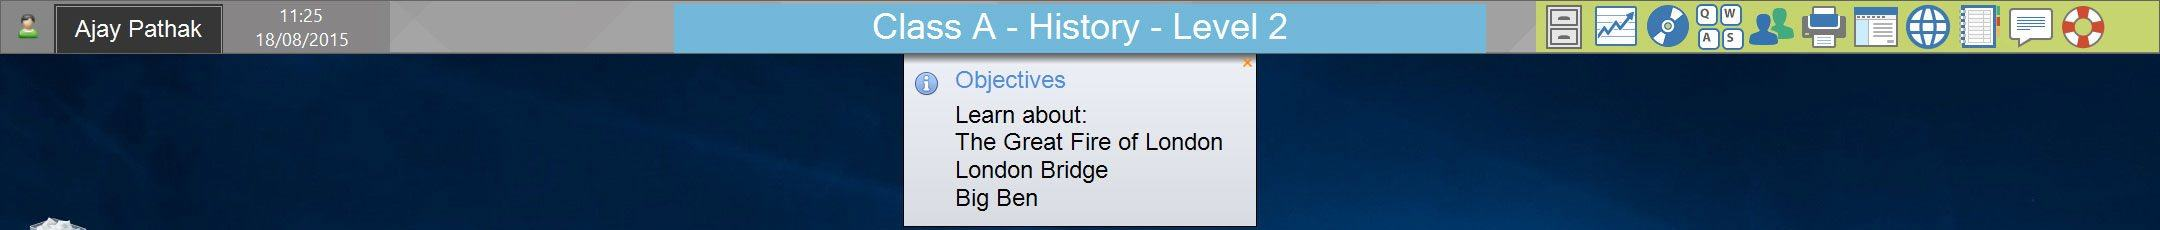 Student Information Bar: display lesson objectives